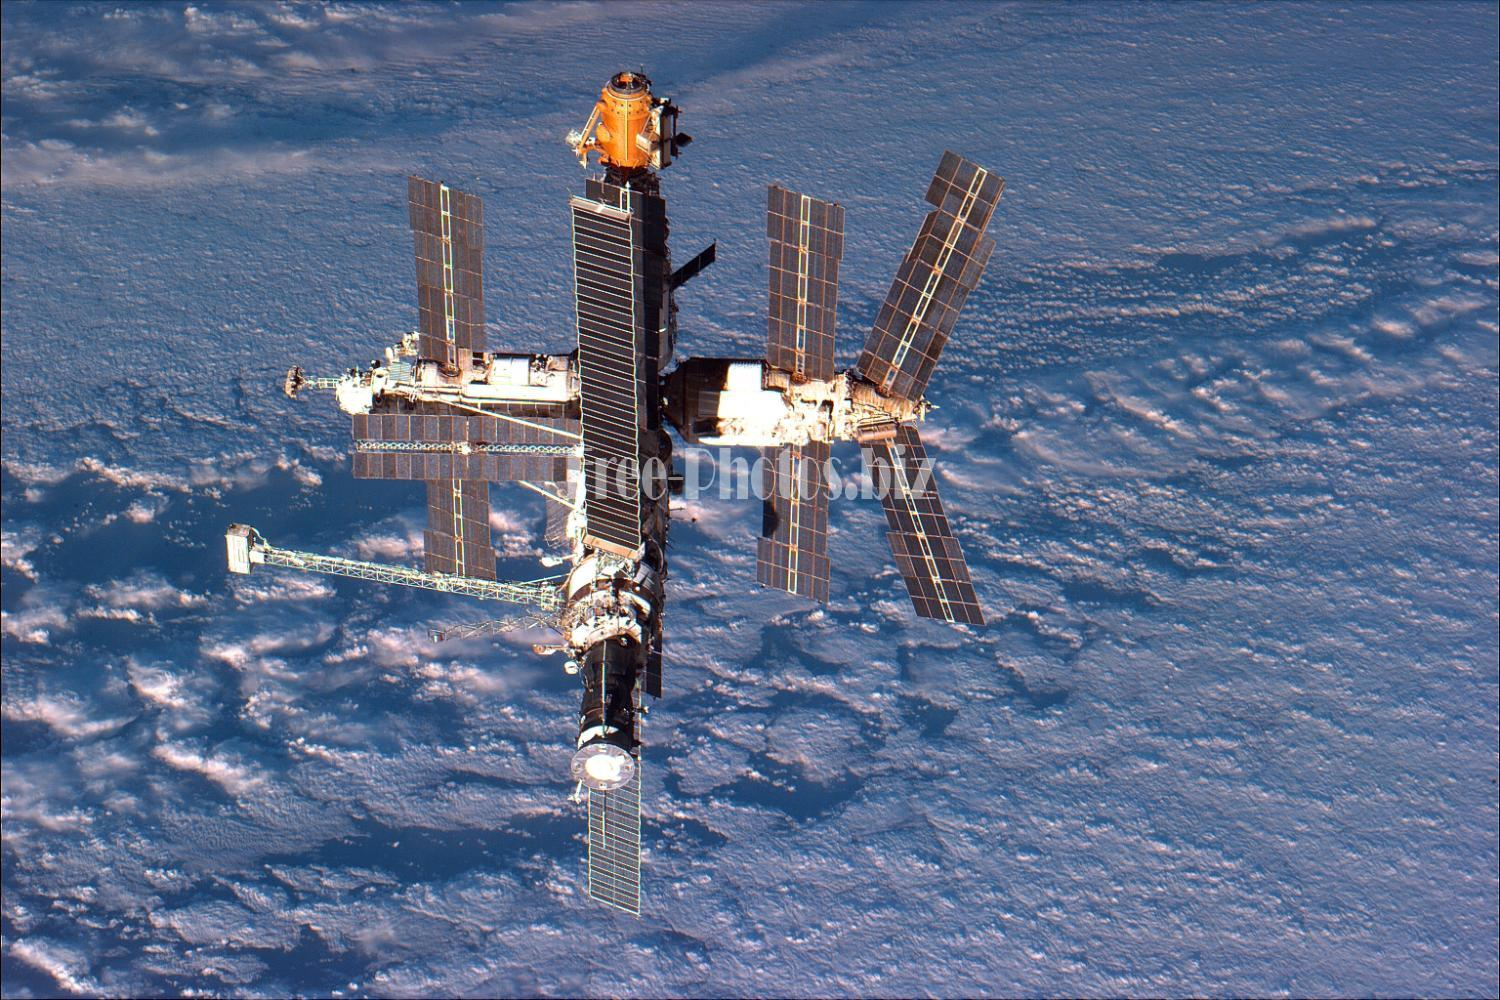 space station Mir on 24 September 1996